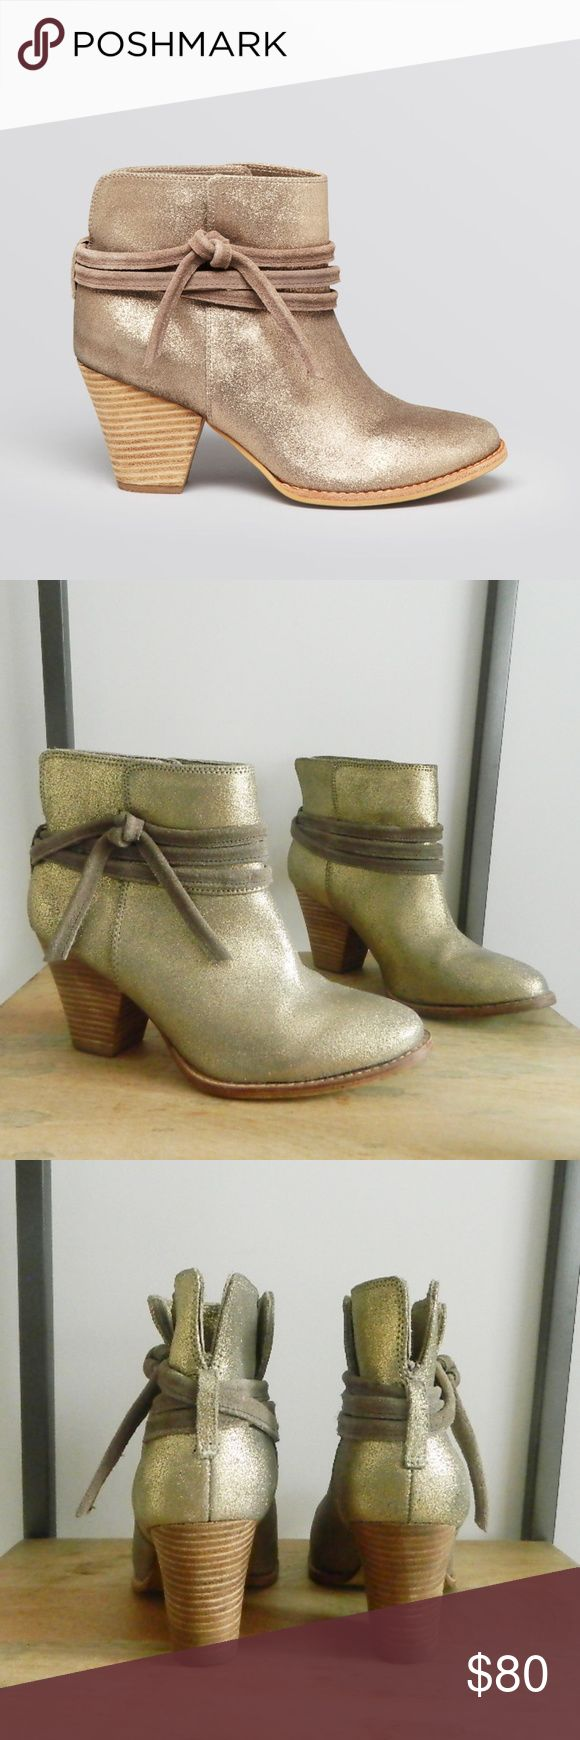 """Splendid Leather Gold Rio Grande Metallic Booties In excellent pre-owned condition Splendid booties. Size 8. Upper leather. Faux stacked 3"""" heel. Very cute, trendy and versatile booties, can be worn with jeans or a dress. No trades. Open to reasonable offers. Happy Poshing! Splendid Shoes Ankle Boots & Booties"""